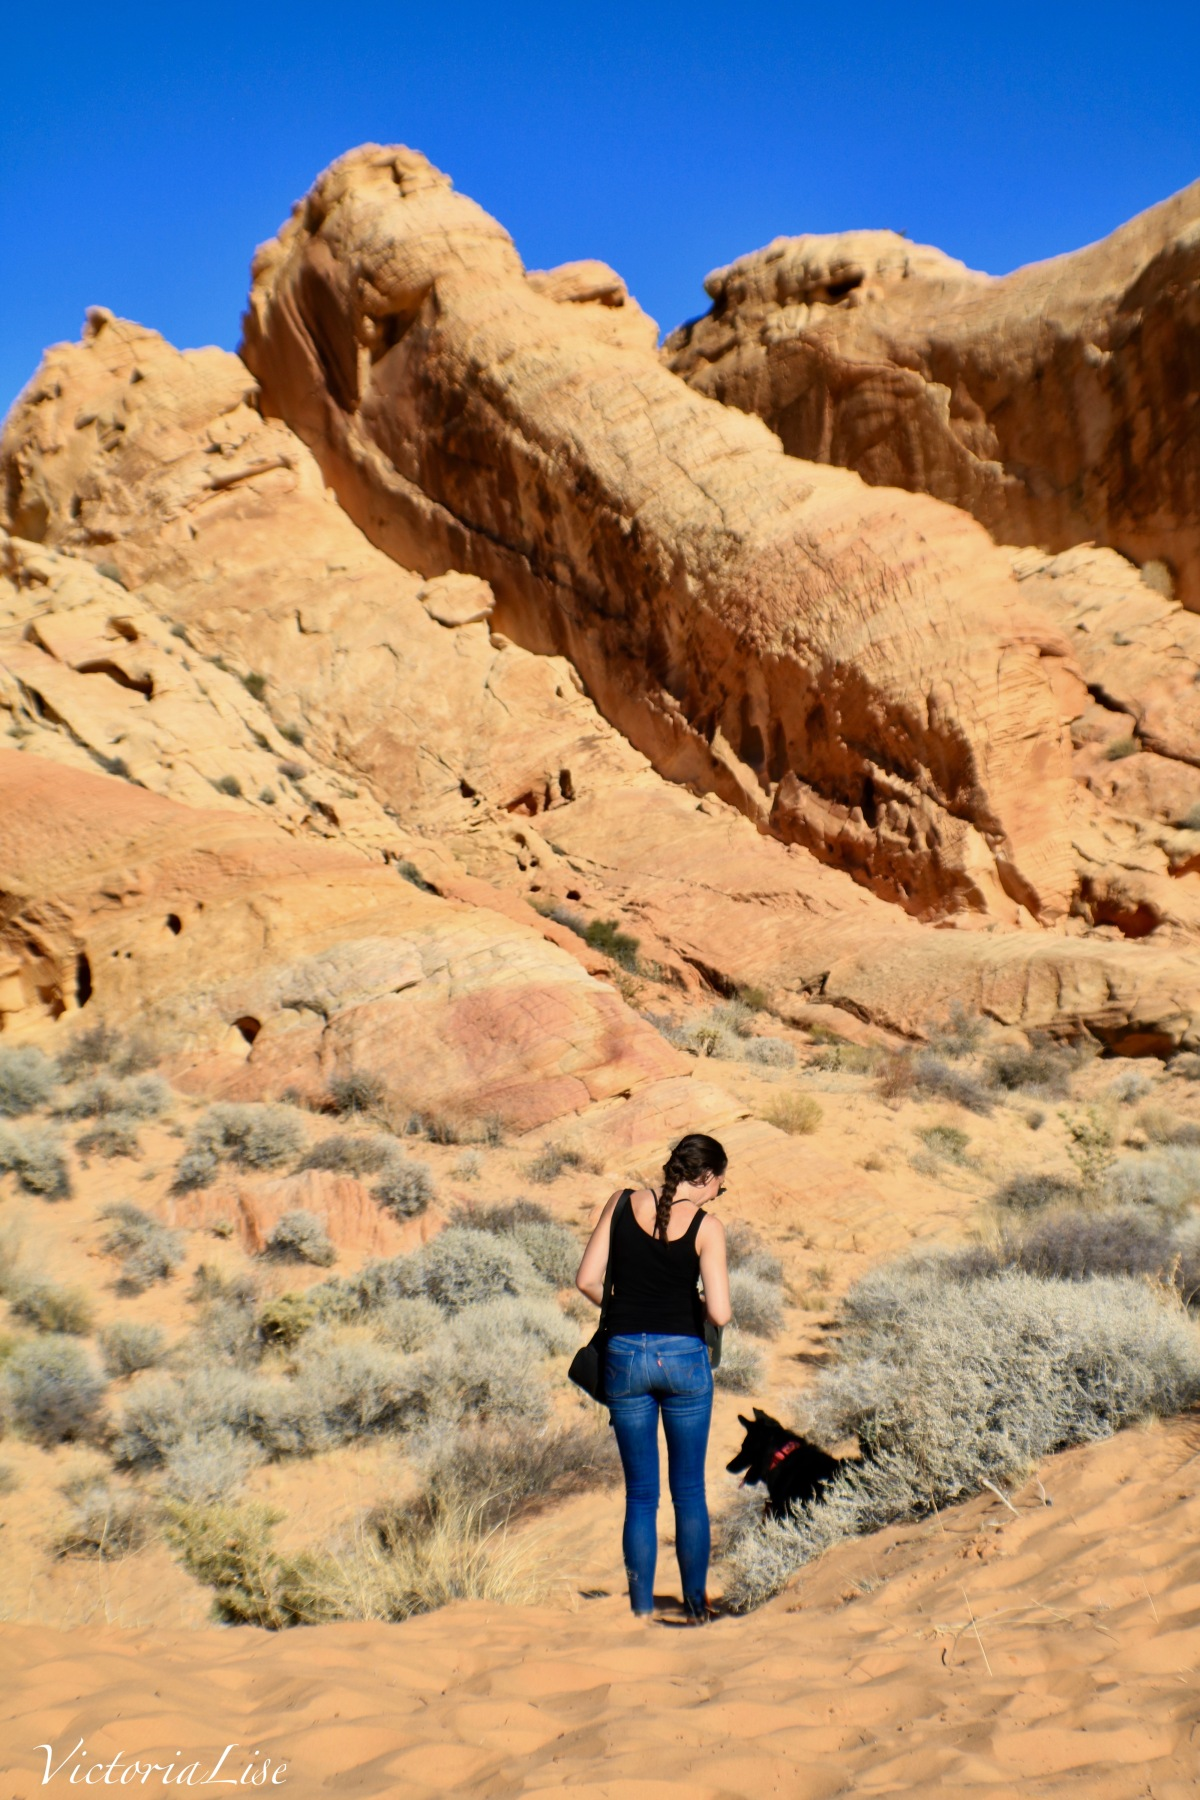 Victoria Lise and dog, Styx. Valley Of Fire.